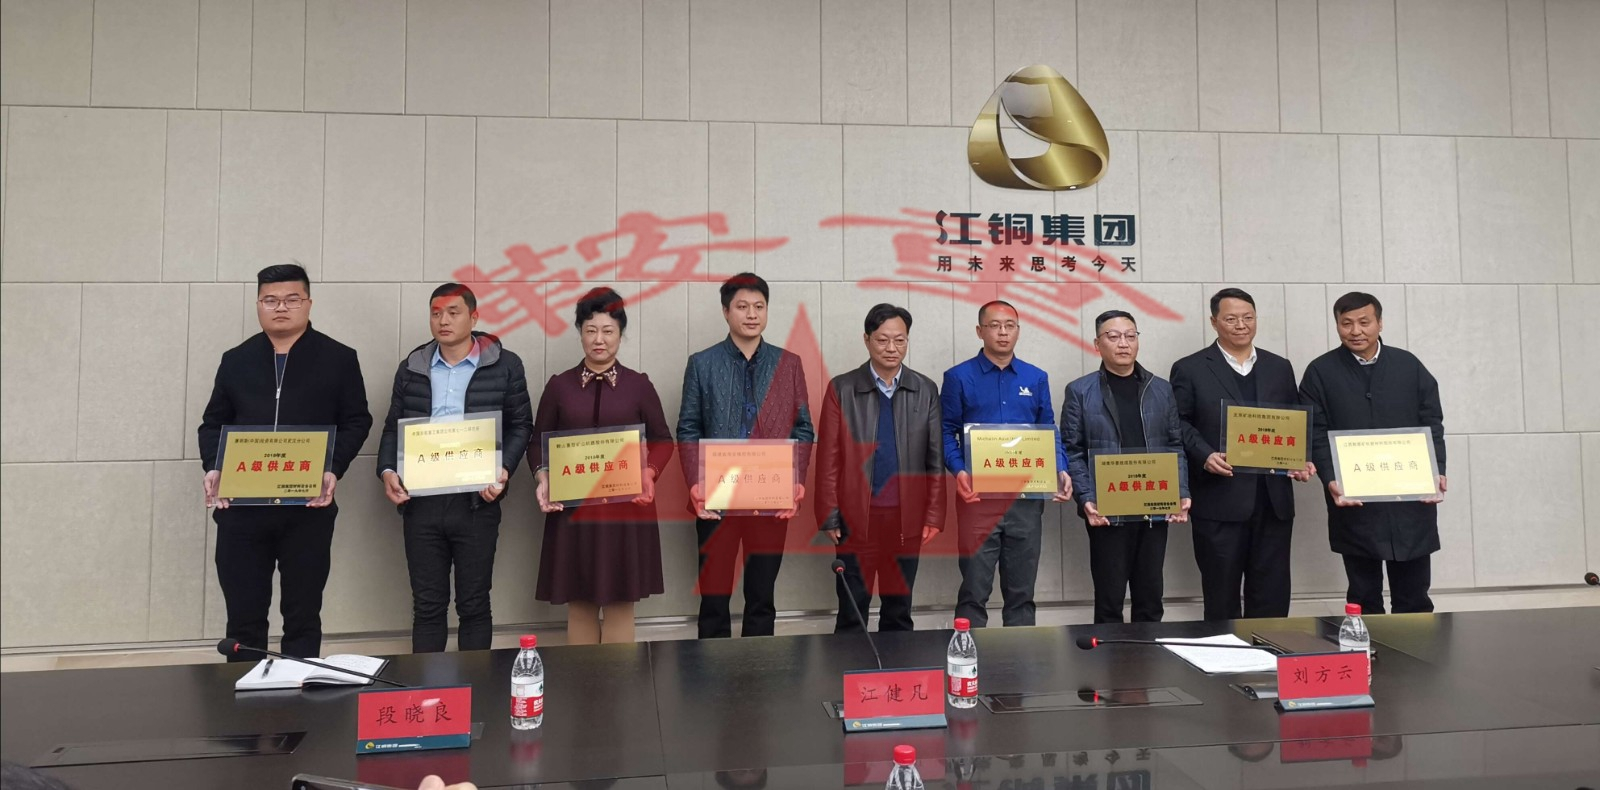 Anshan Heavy Duty Mining Machinery Co., Ltd. was named a Grade A supplier